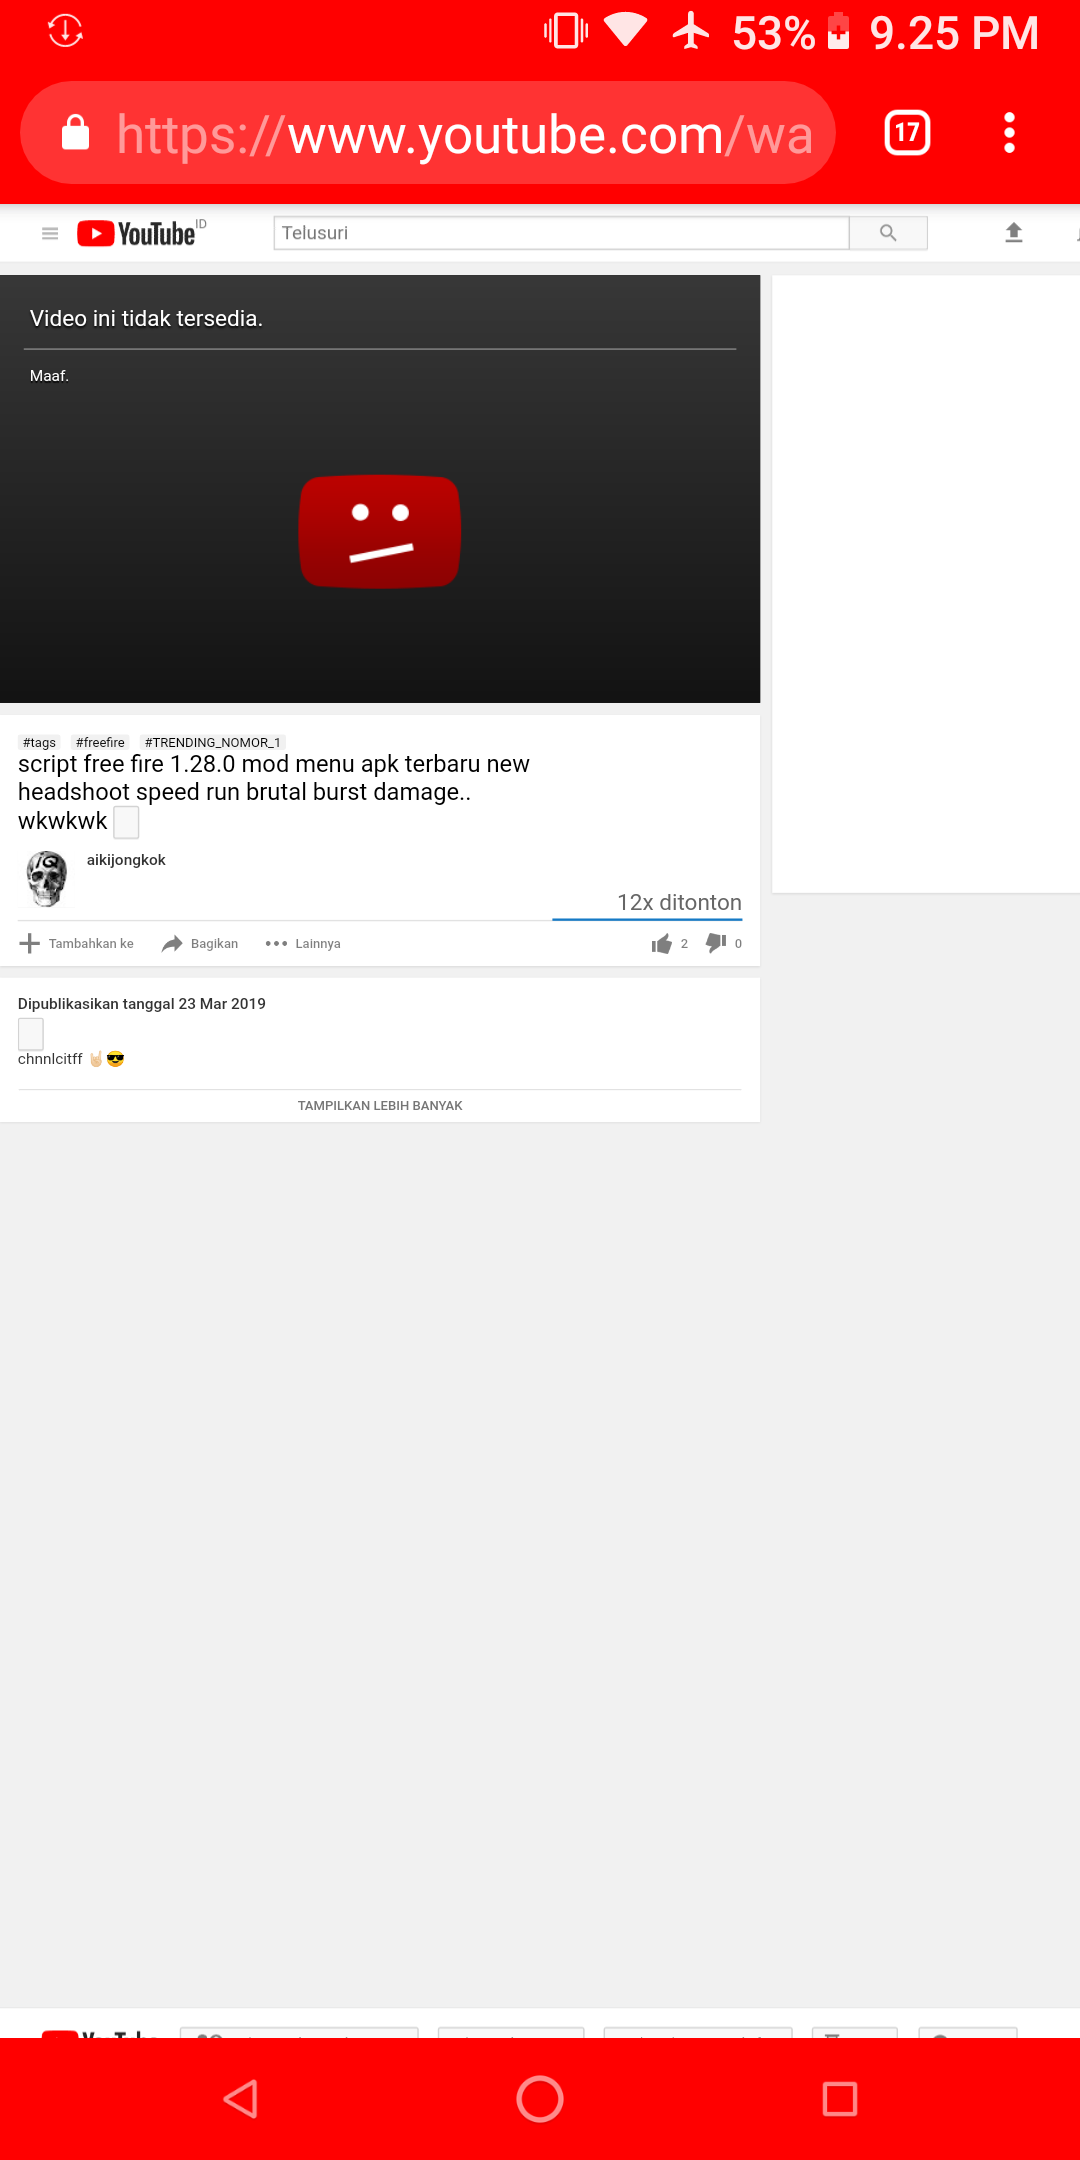 dear admin please help me my video was deleted because it